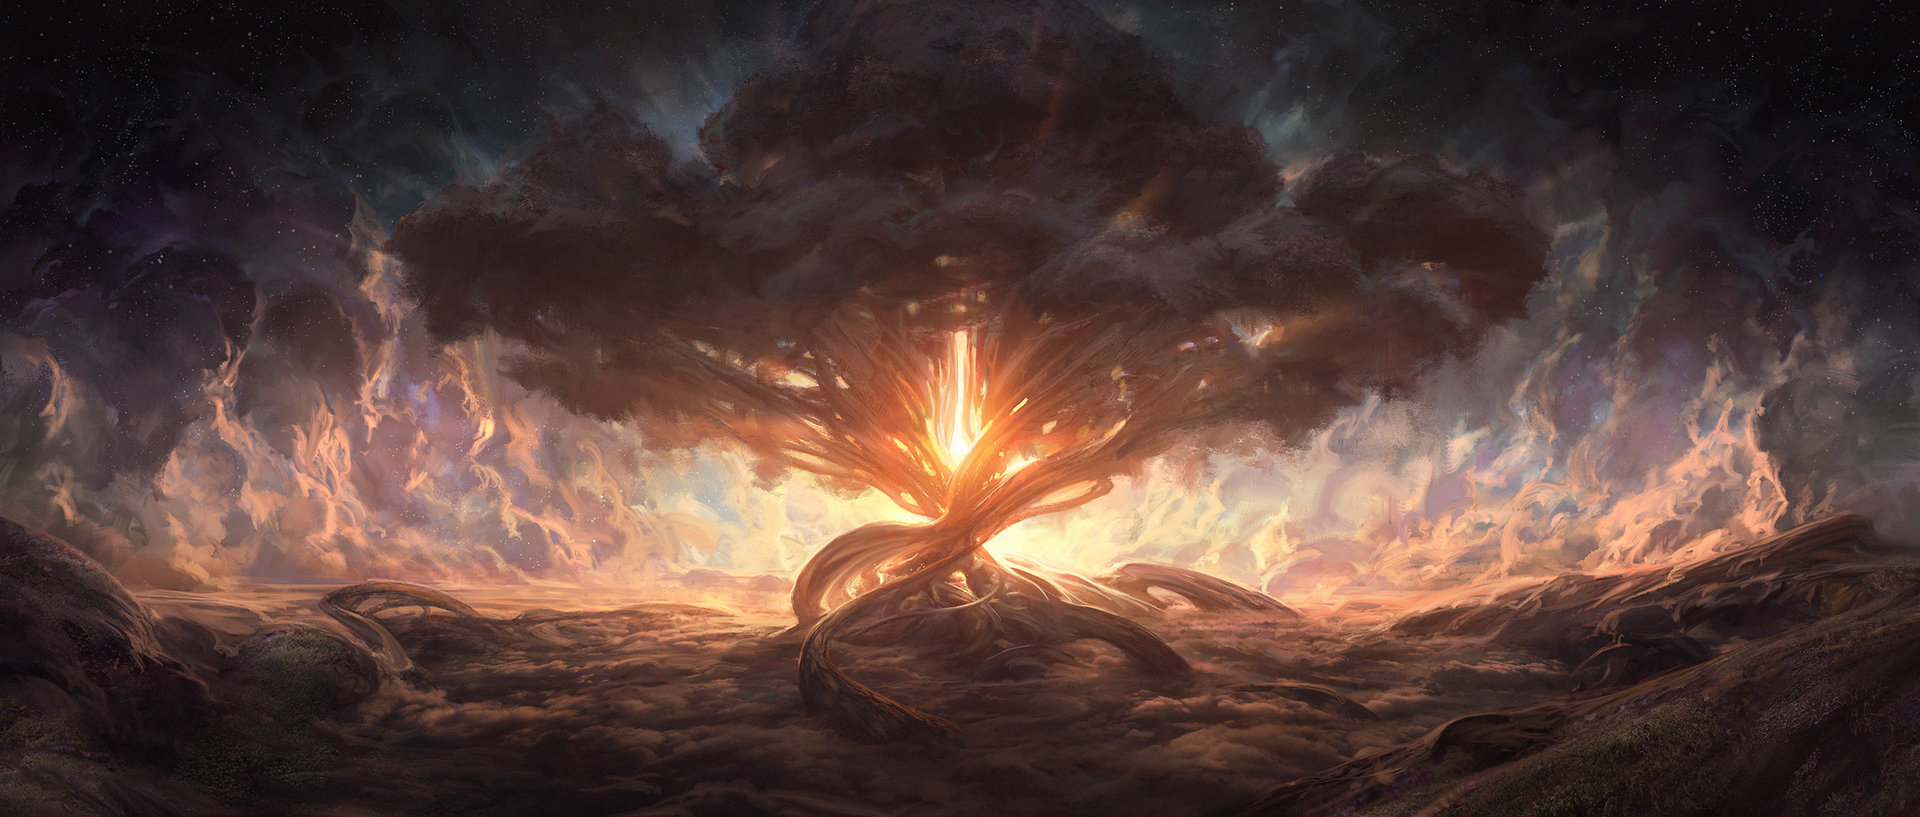 Noah Bradley Digital Painting Illustration Ein Sof